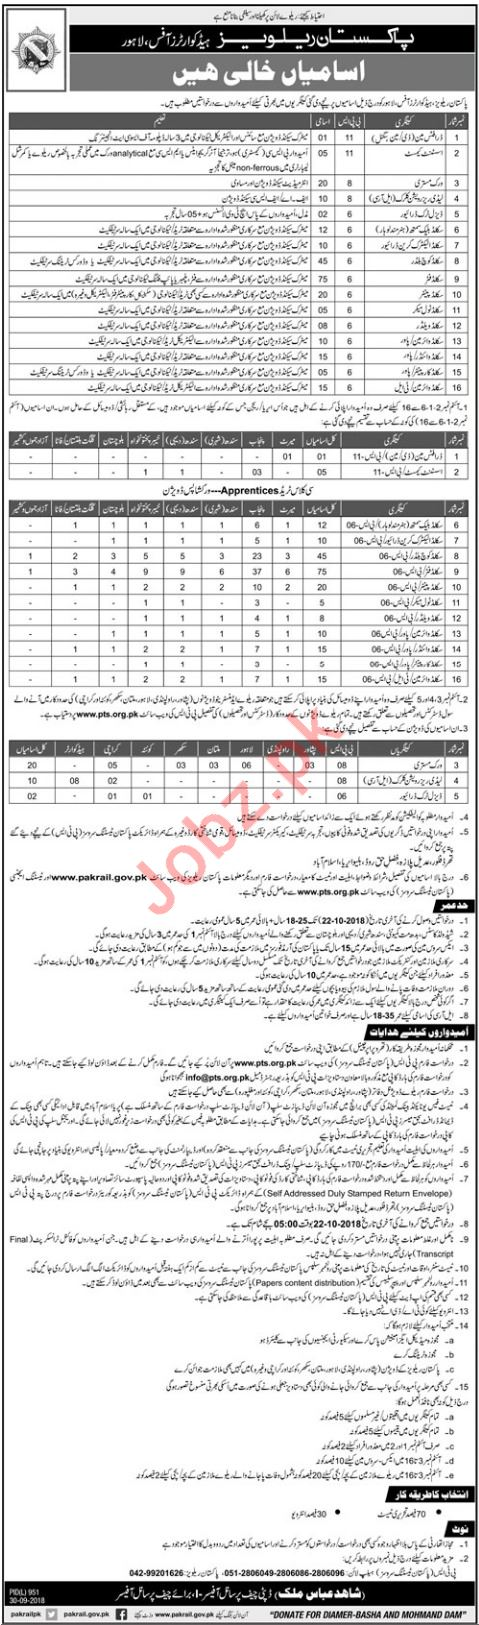 Pakistan Railways Headquarters Office Jobs 2018 via PTS